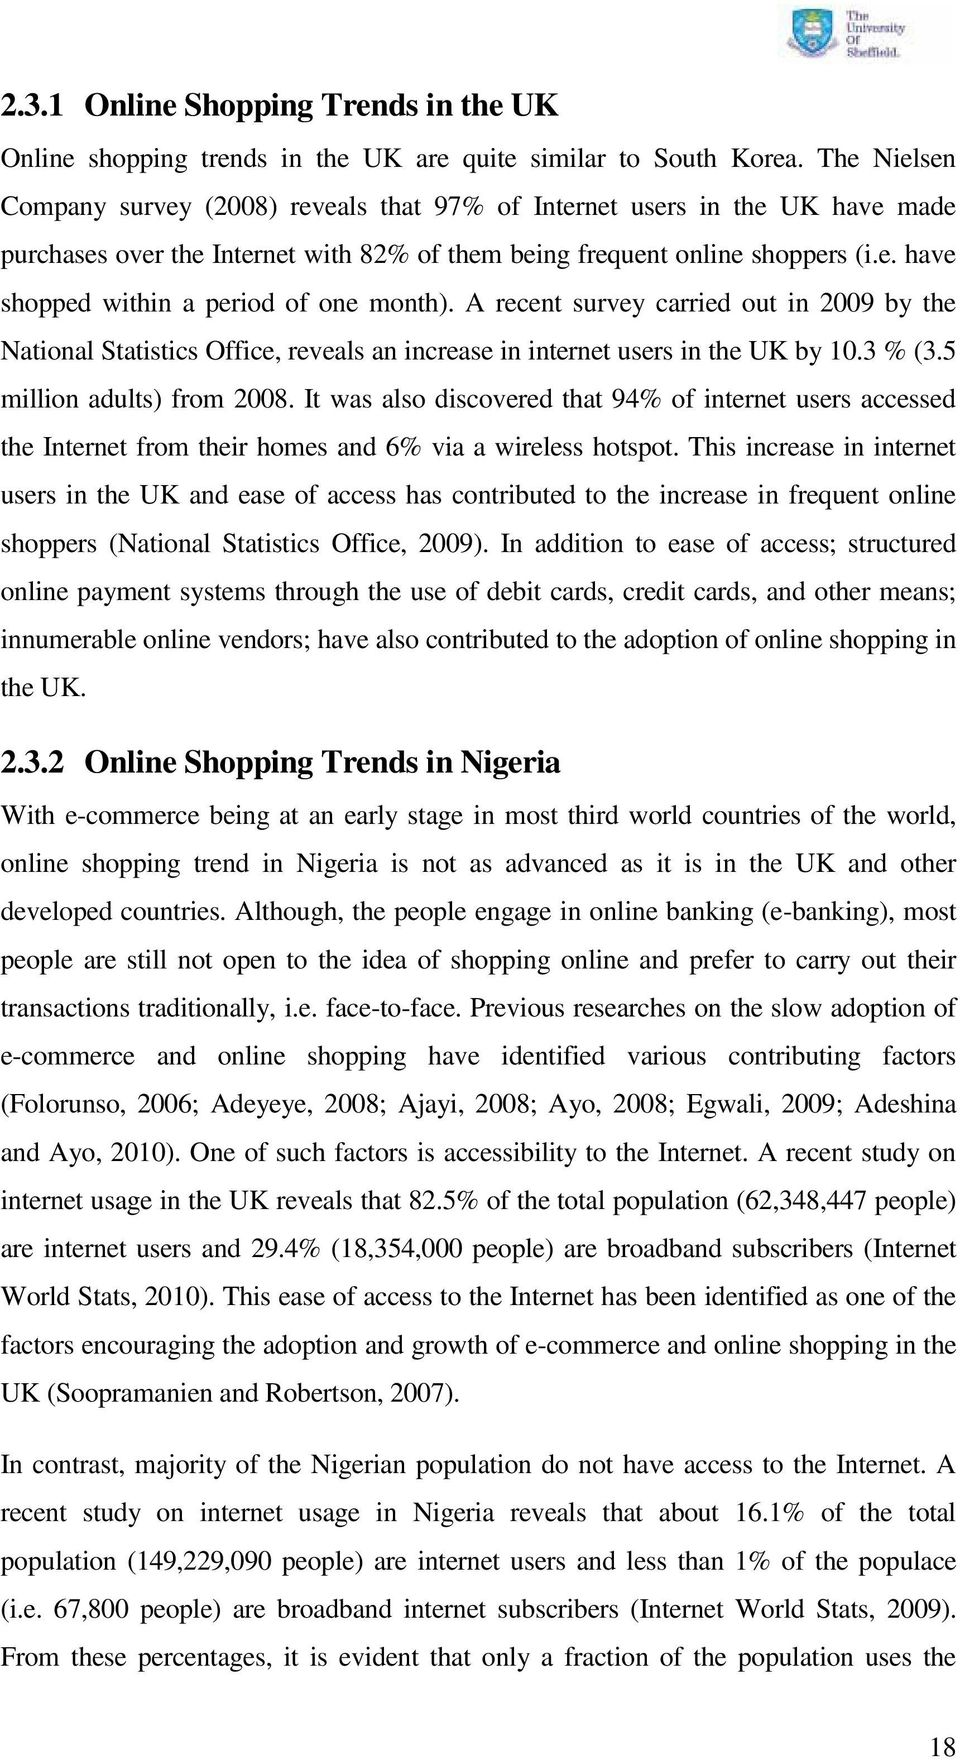 e-commerce research paper essay Read this essay on e-commerce research paper come browse our large digital warehouse of free sample essays get the knowledge you need in order to pass your classes and more only at termpaperwarehousecom.